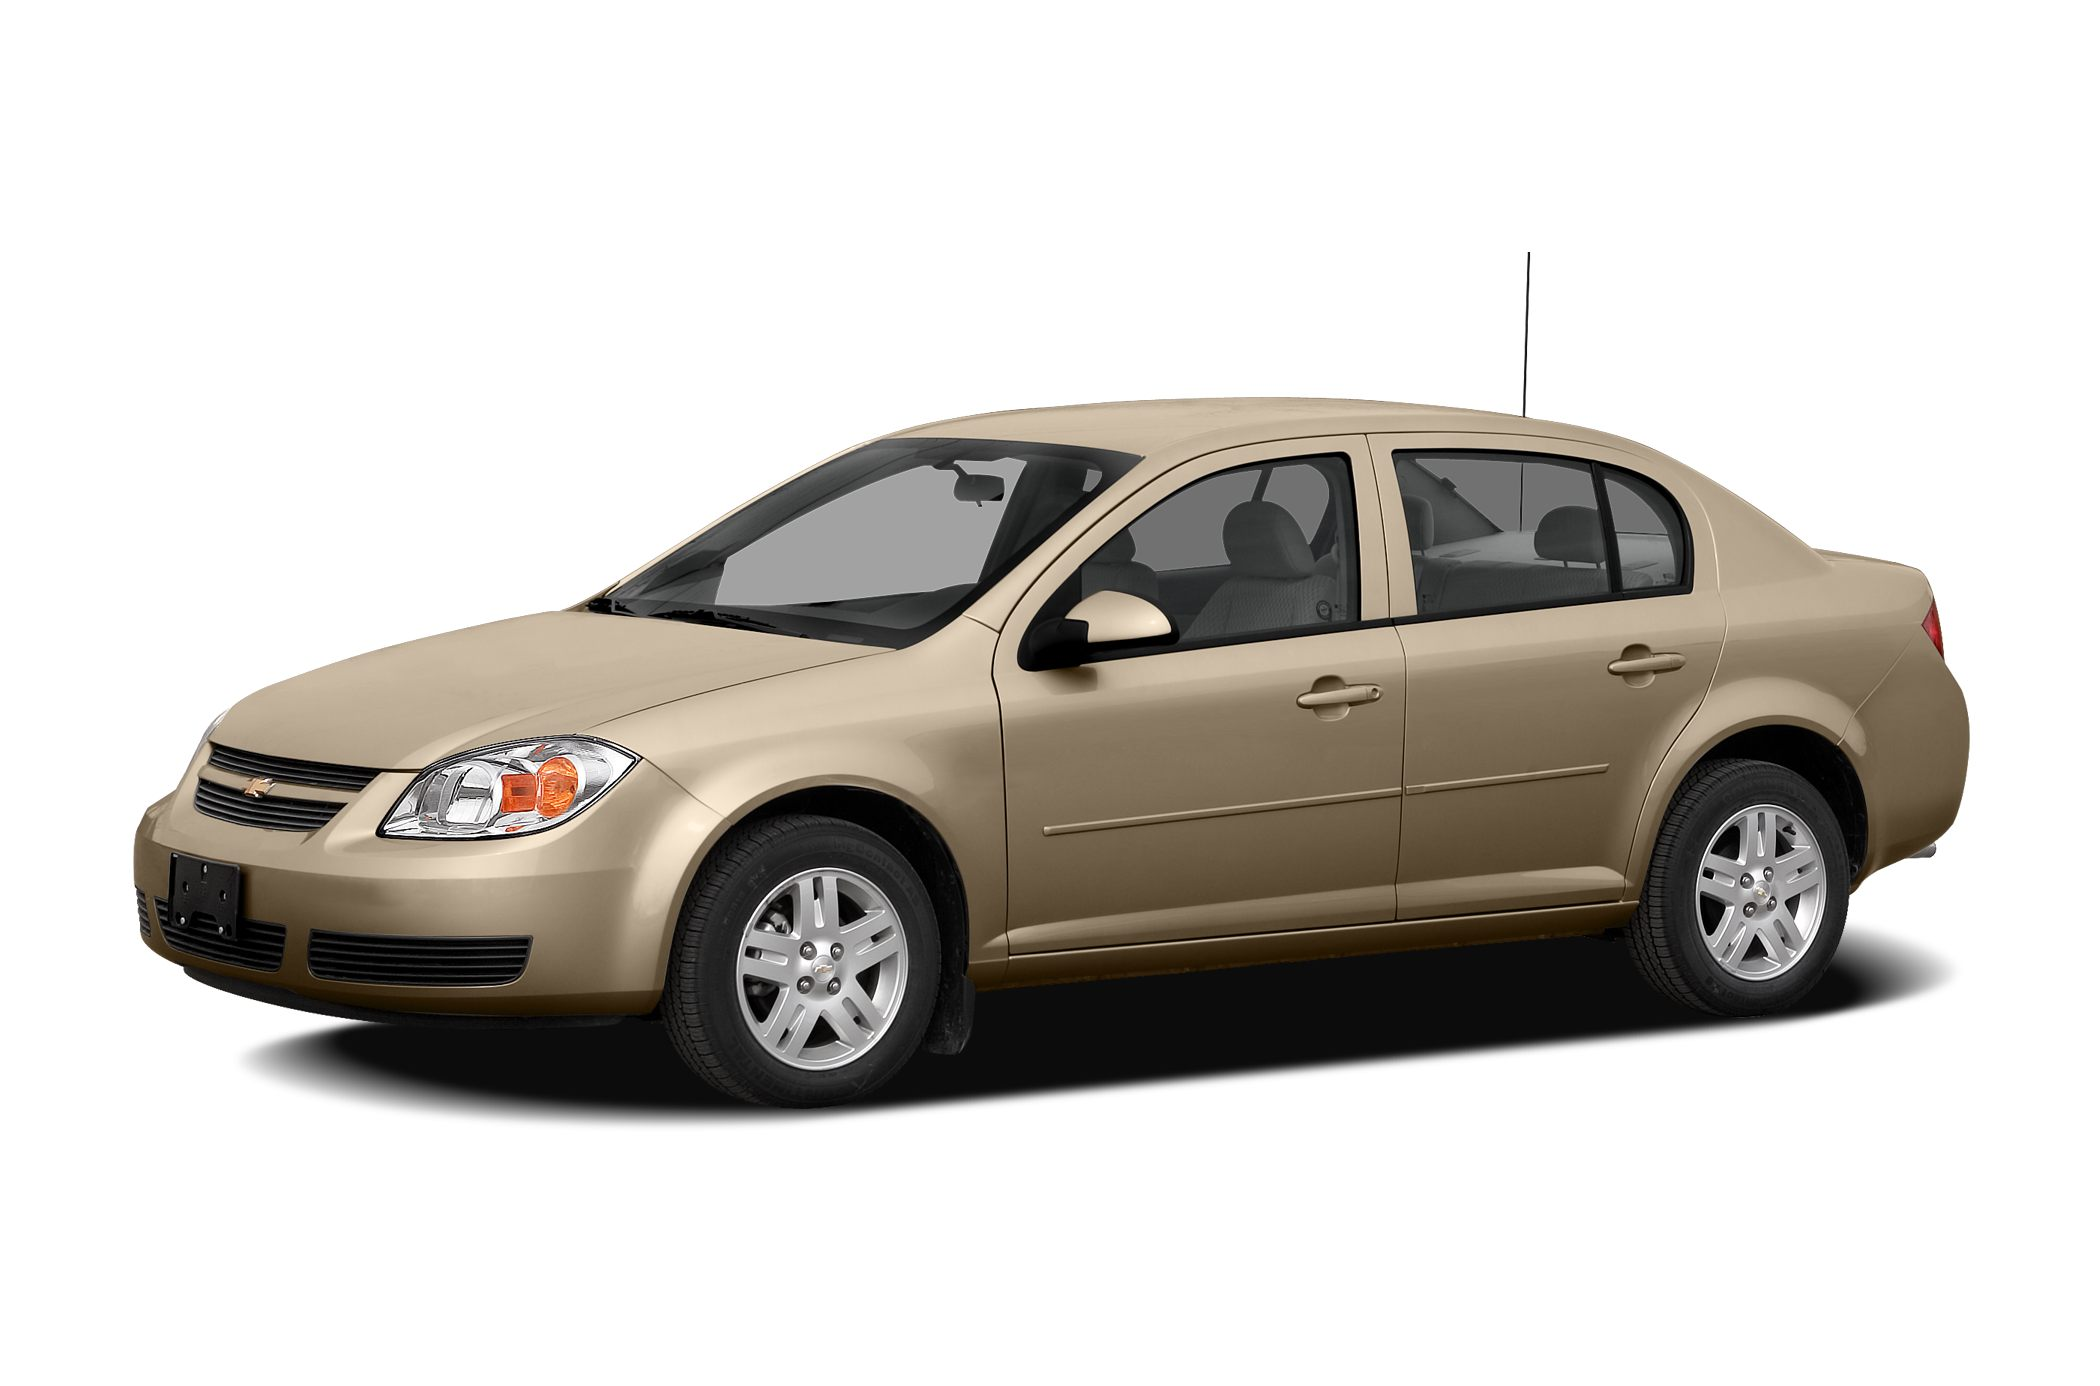 2008 Chevrolet Cobalt LS  WHEN IT COMES TOEXCELLENCE IN USED CAR SALES YOU KNOW YOURE AT STAR